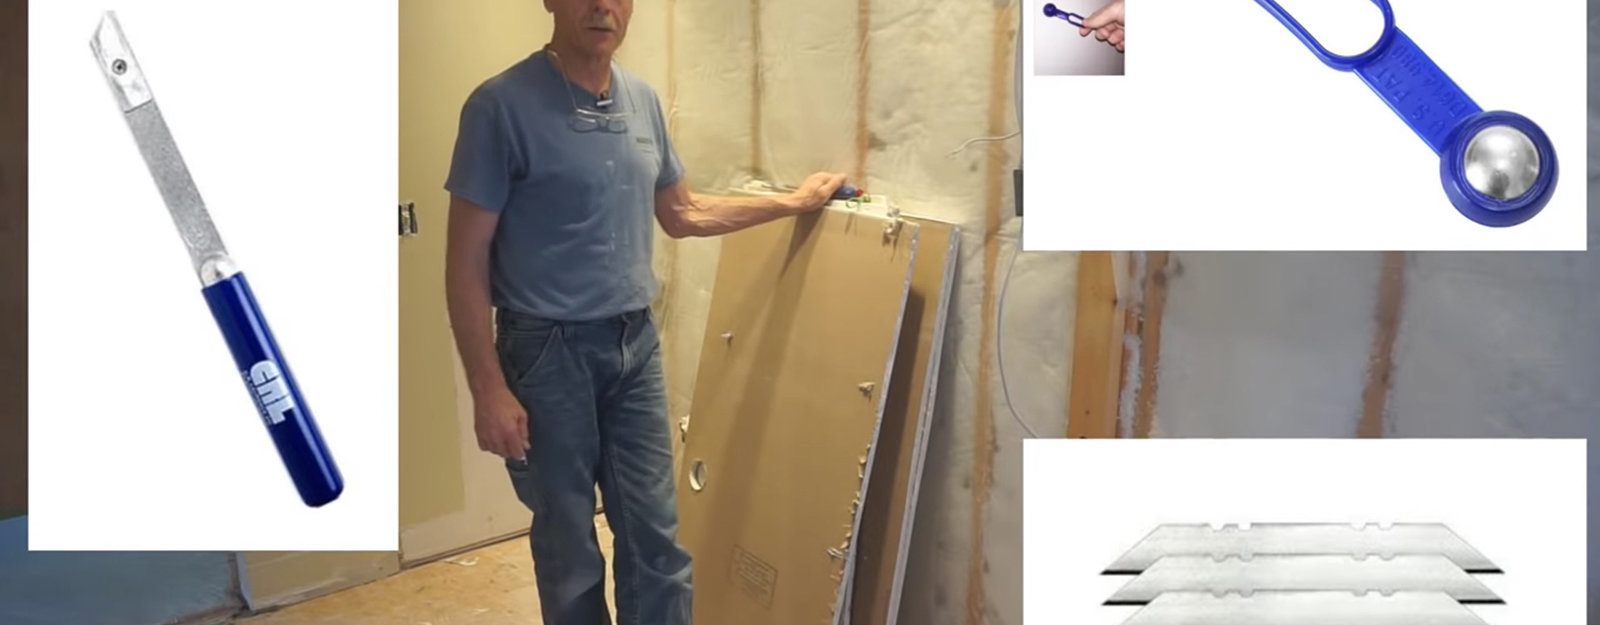 How to Remove Sheetrock with Less Mess - Core77